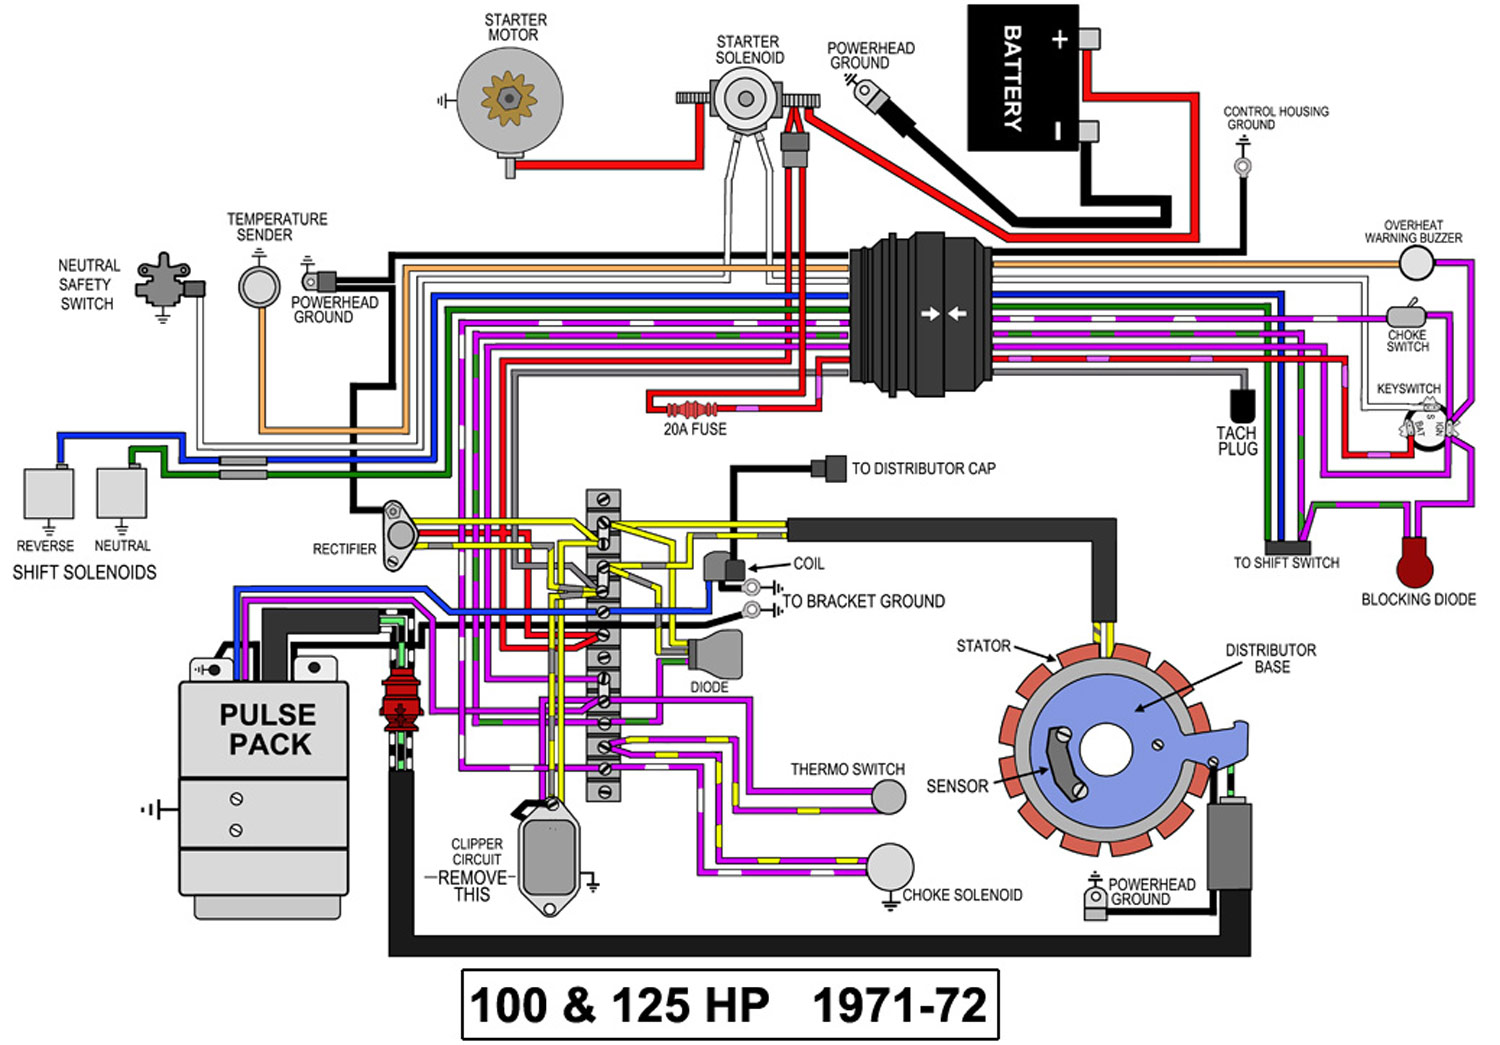 Evinrude Johnson Outboard Wiring Diagrams Mastertech Marine Max Rules  Evinrude Wiring Diagrams Gas Gauge